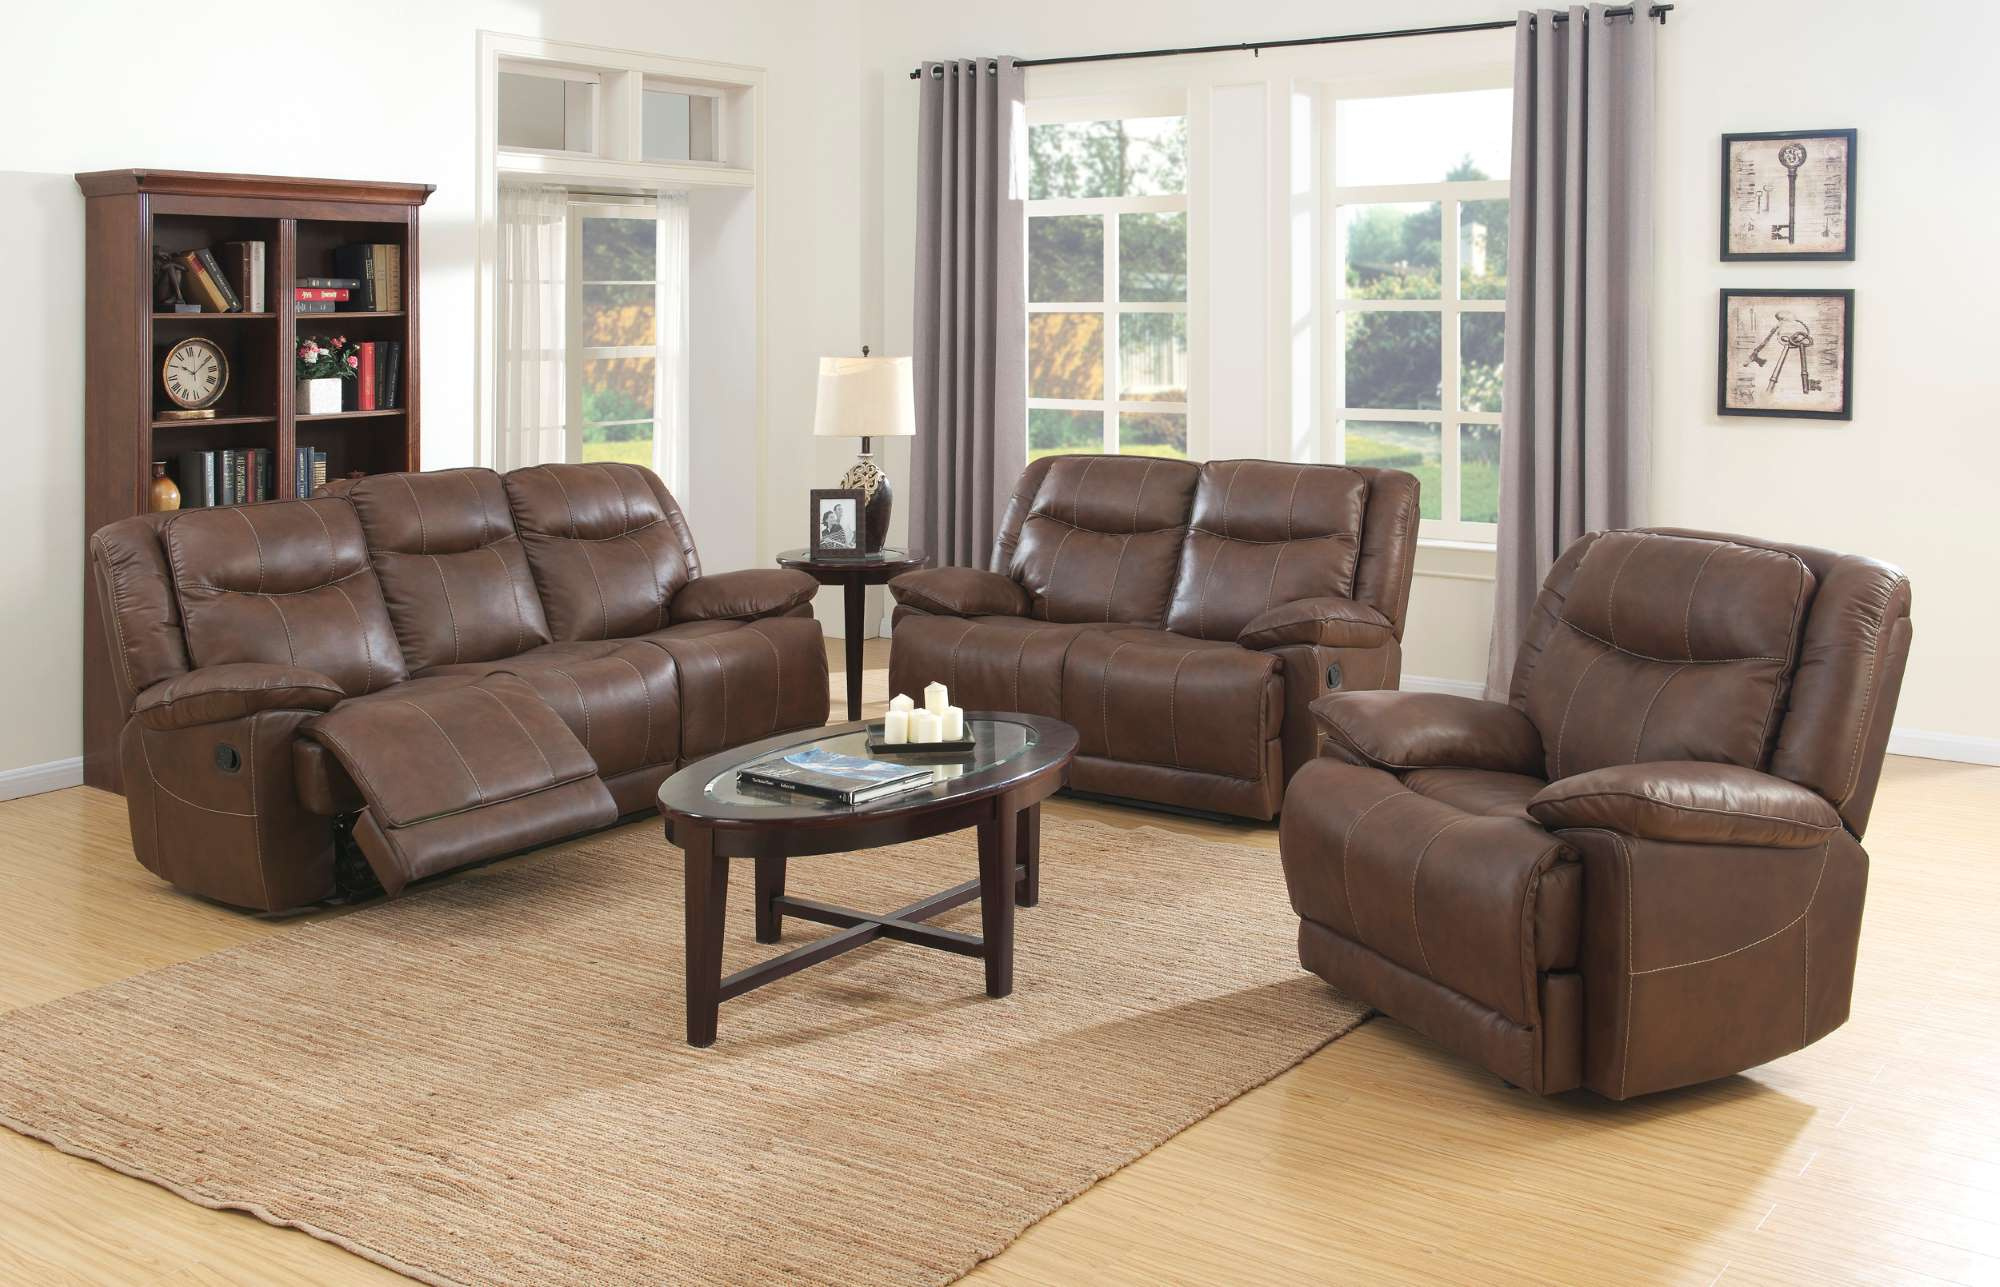 Reclining Sofa and Loveseat set LR3280